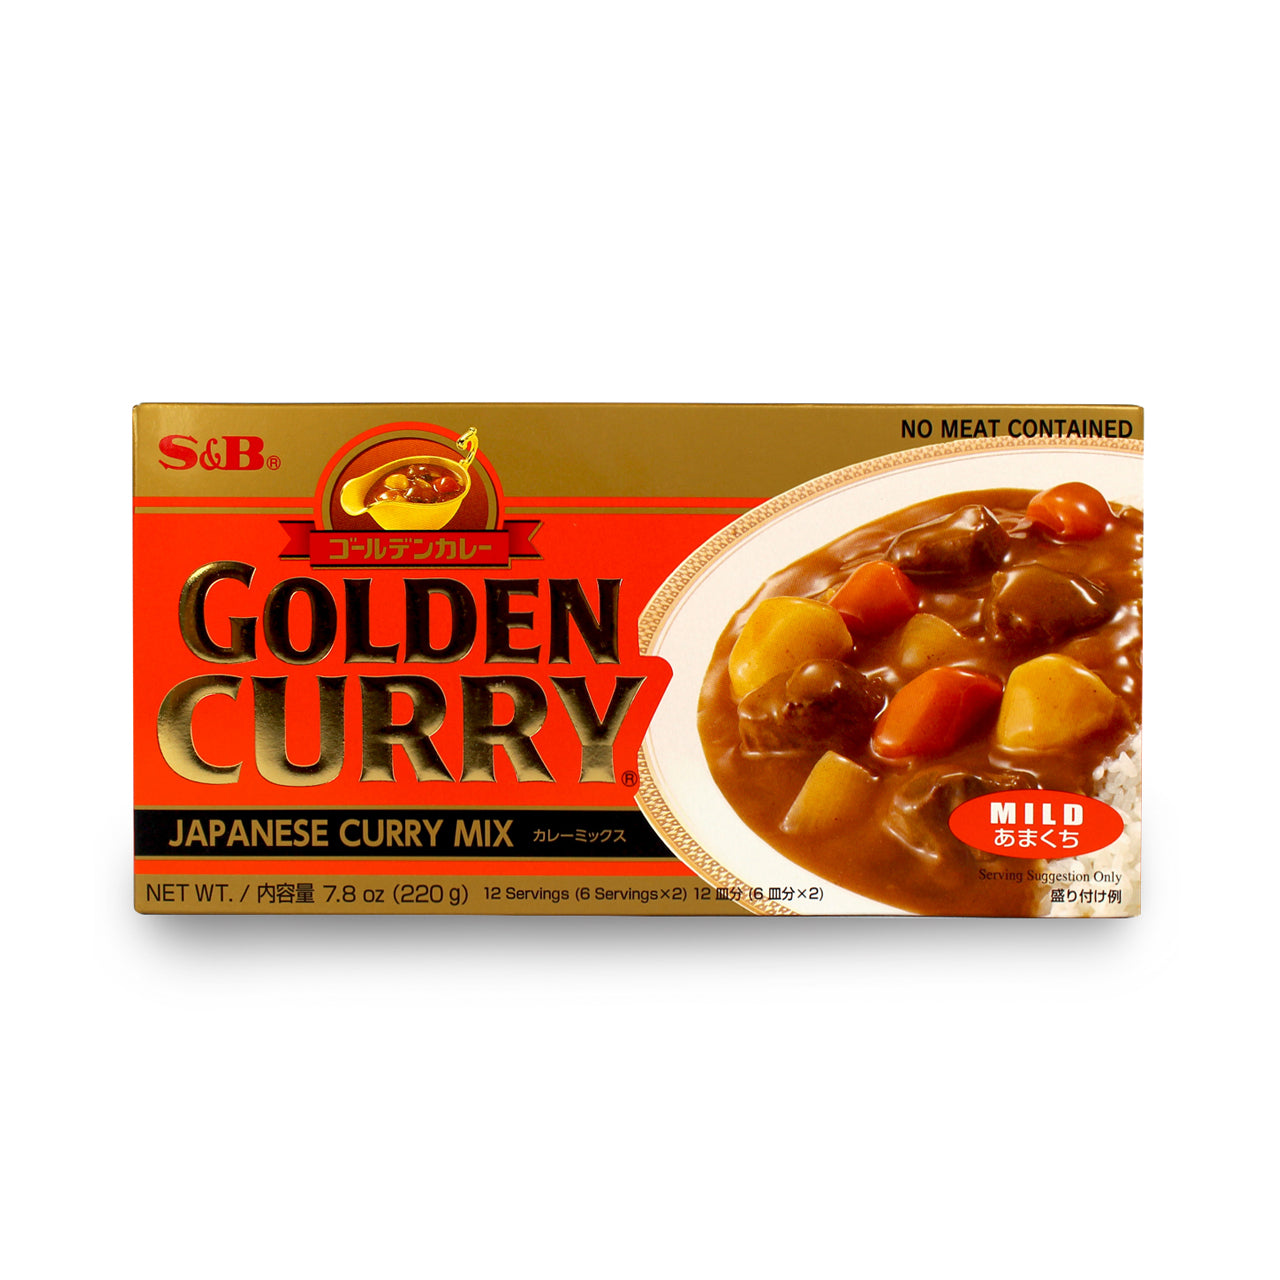 S&B Golden Curry Mix 7.8oz (220g) - MILD (SKU: 40684)